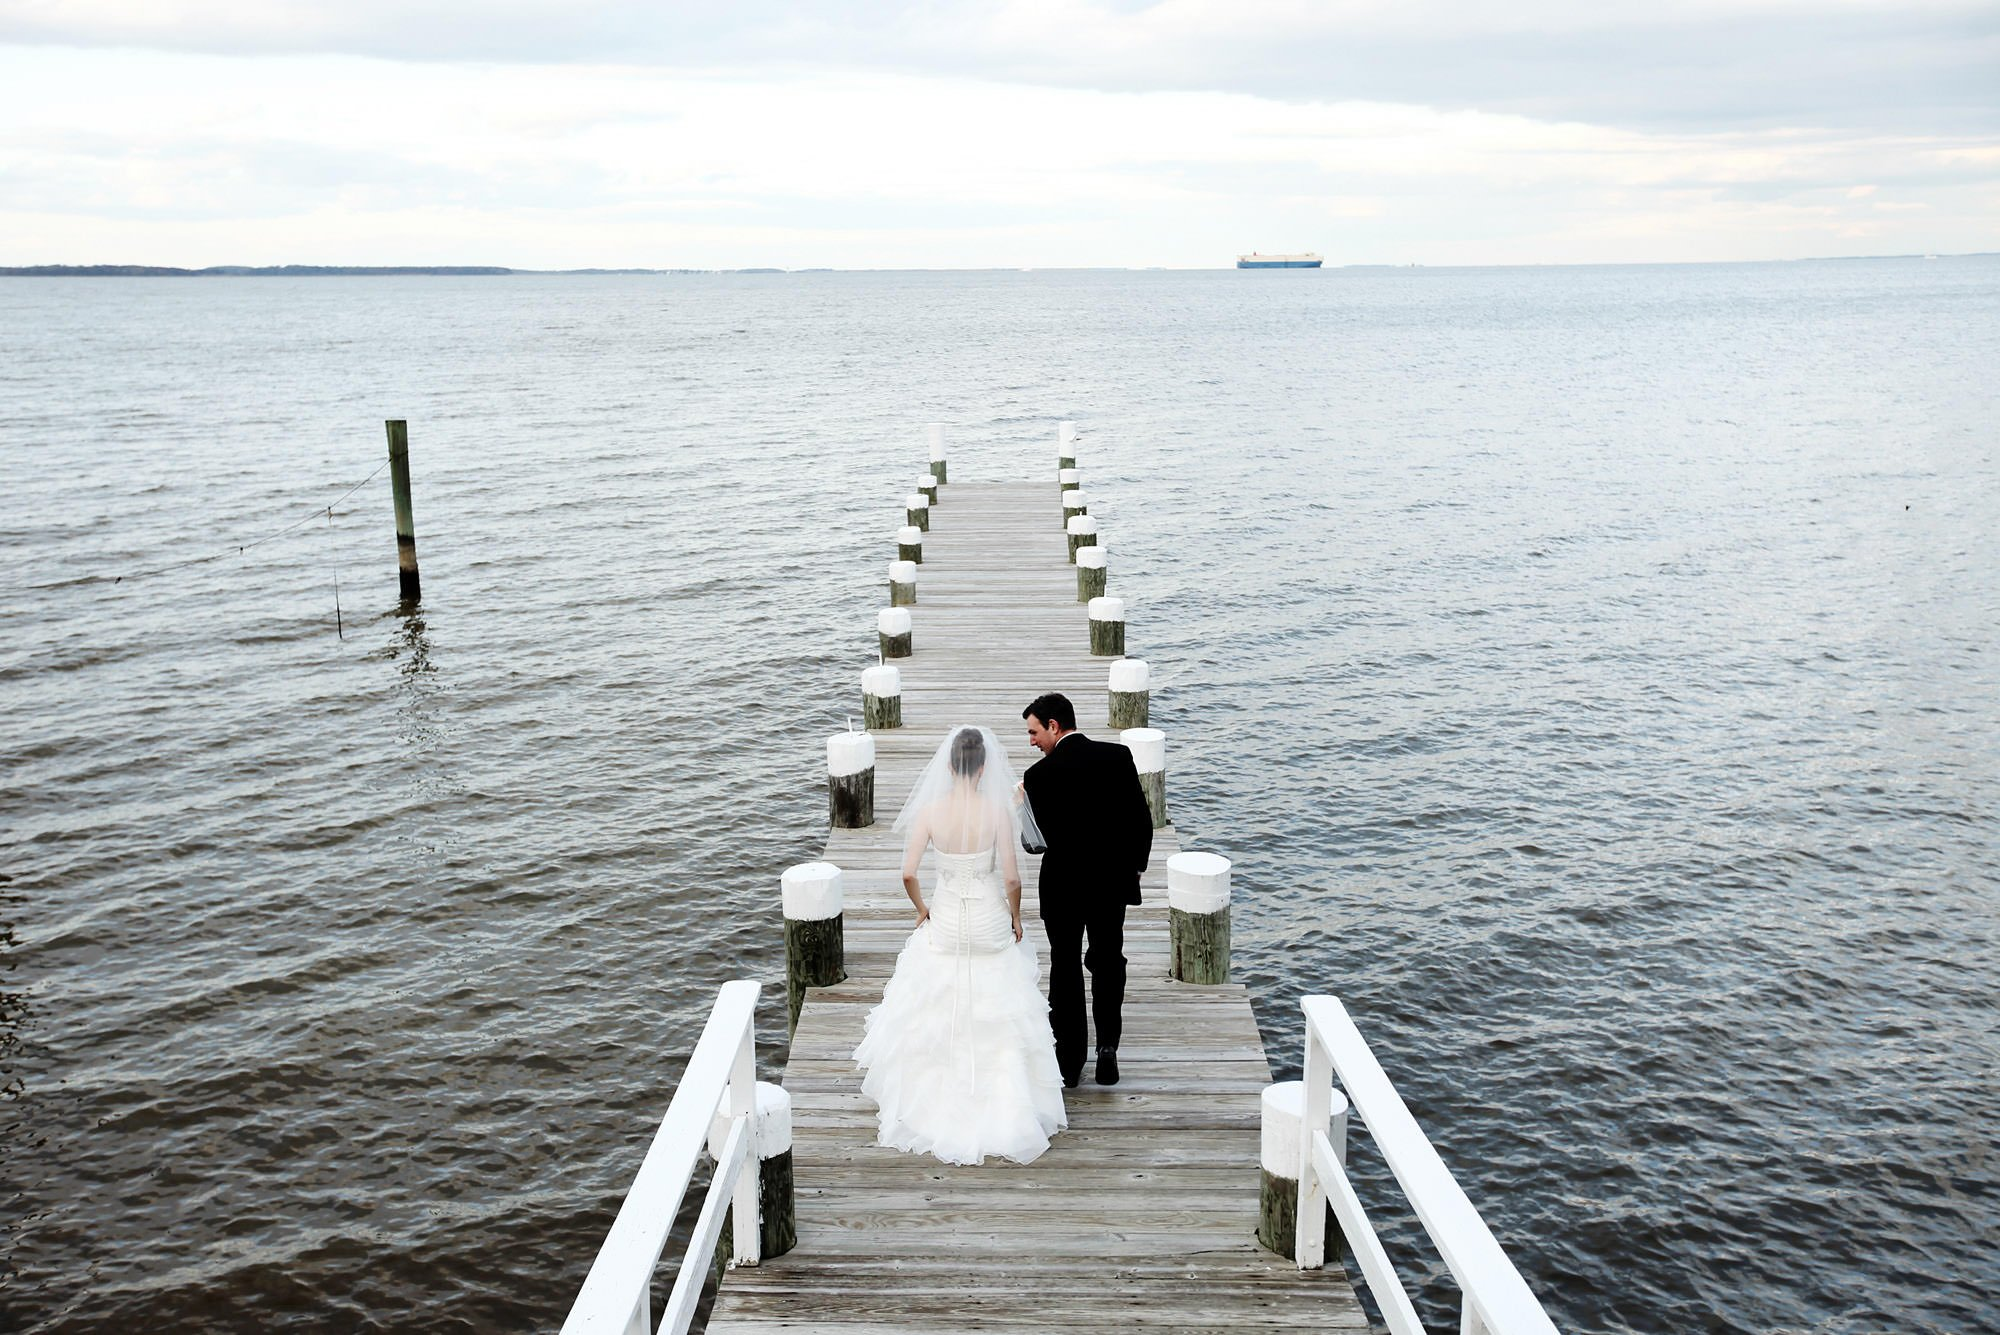 The couple walks down the dock during their Celebrations at the Bay wedding.